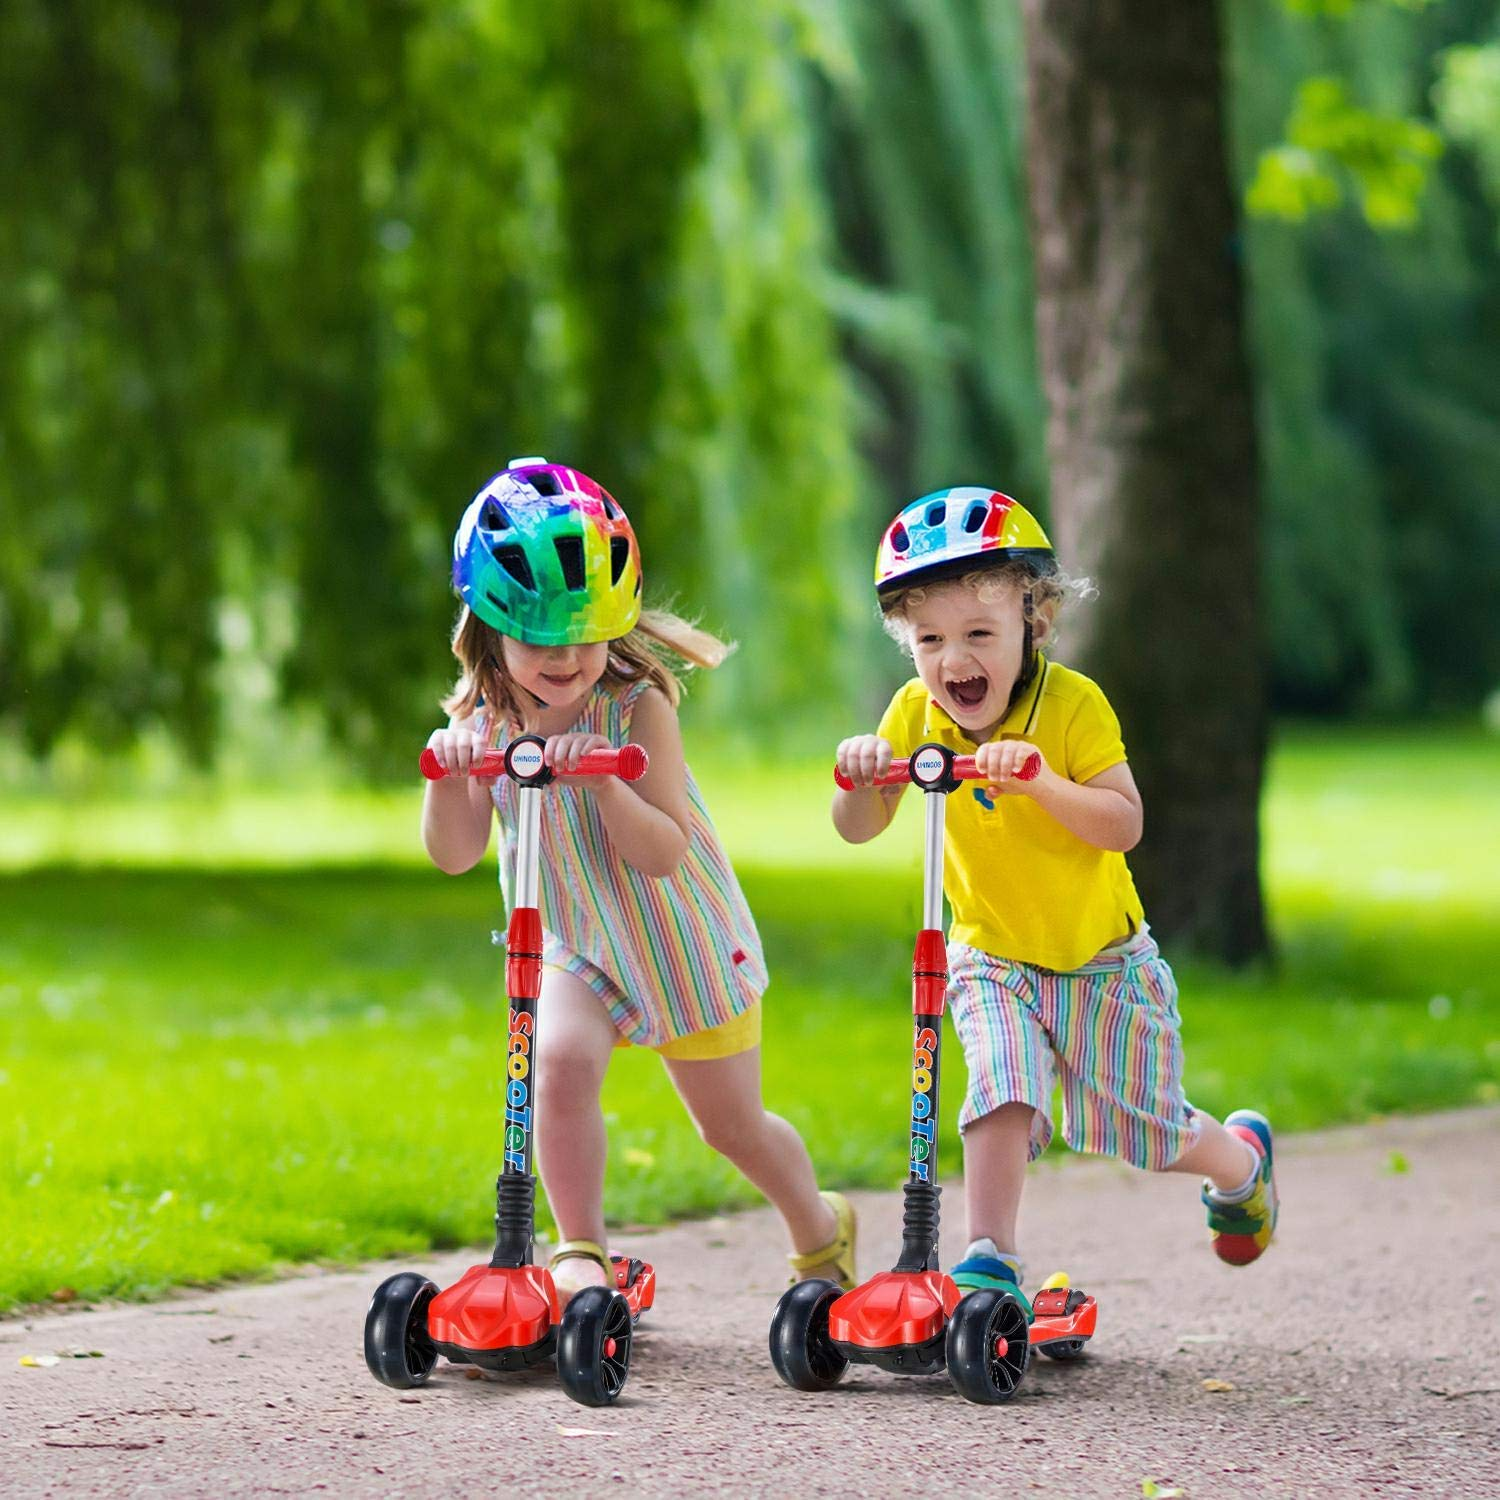 Cheap Walmart Scooters For Kids Find Walmart Scooters For Kids